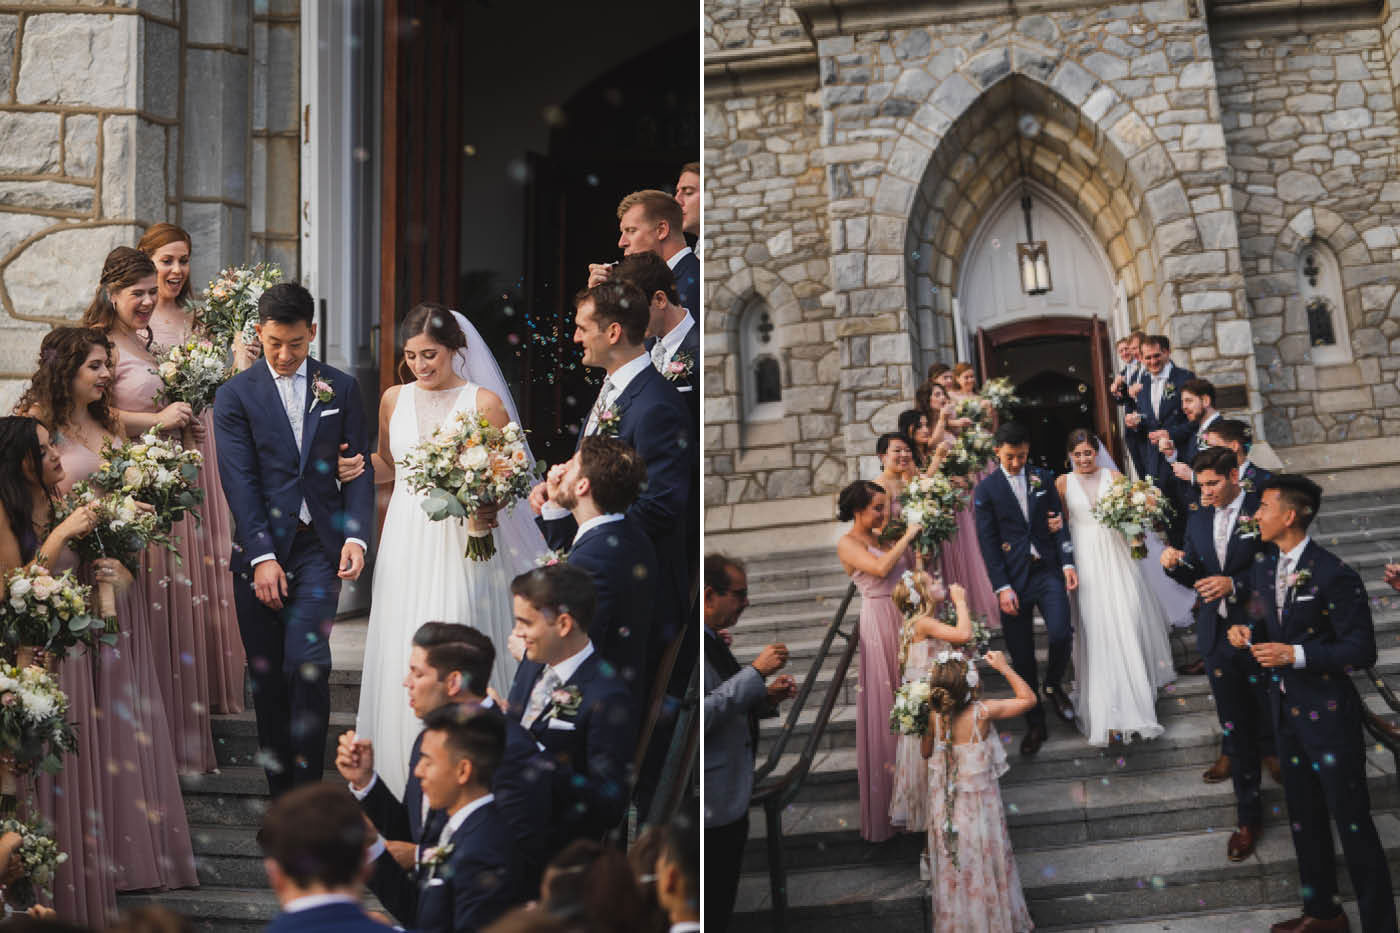 walking down the steps from a wedding at Saint Thomas of Villanova by Weddings by Hanel